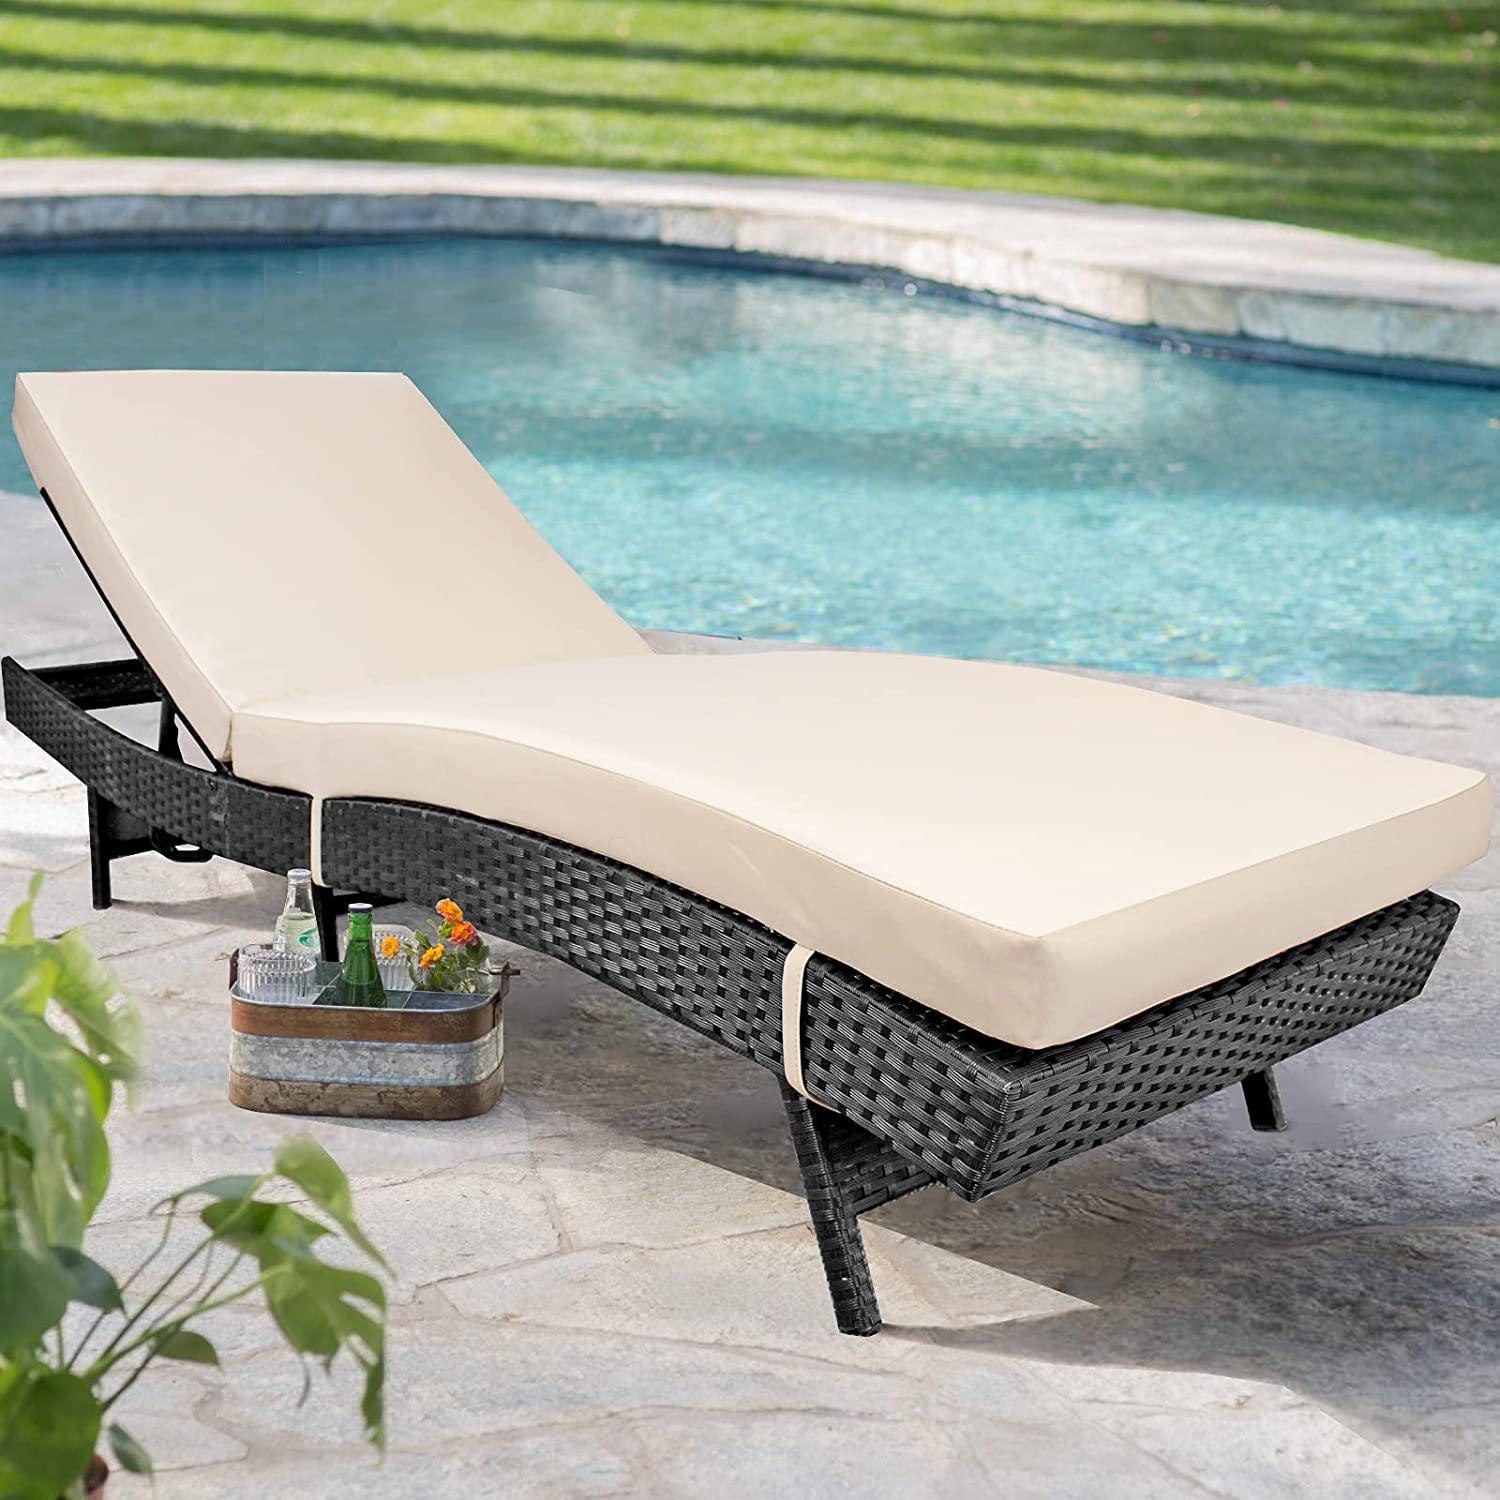 Patio Chaise Lounge 2021 new Outdoor Black Por Outstanding Rattan Chair Wicker